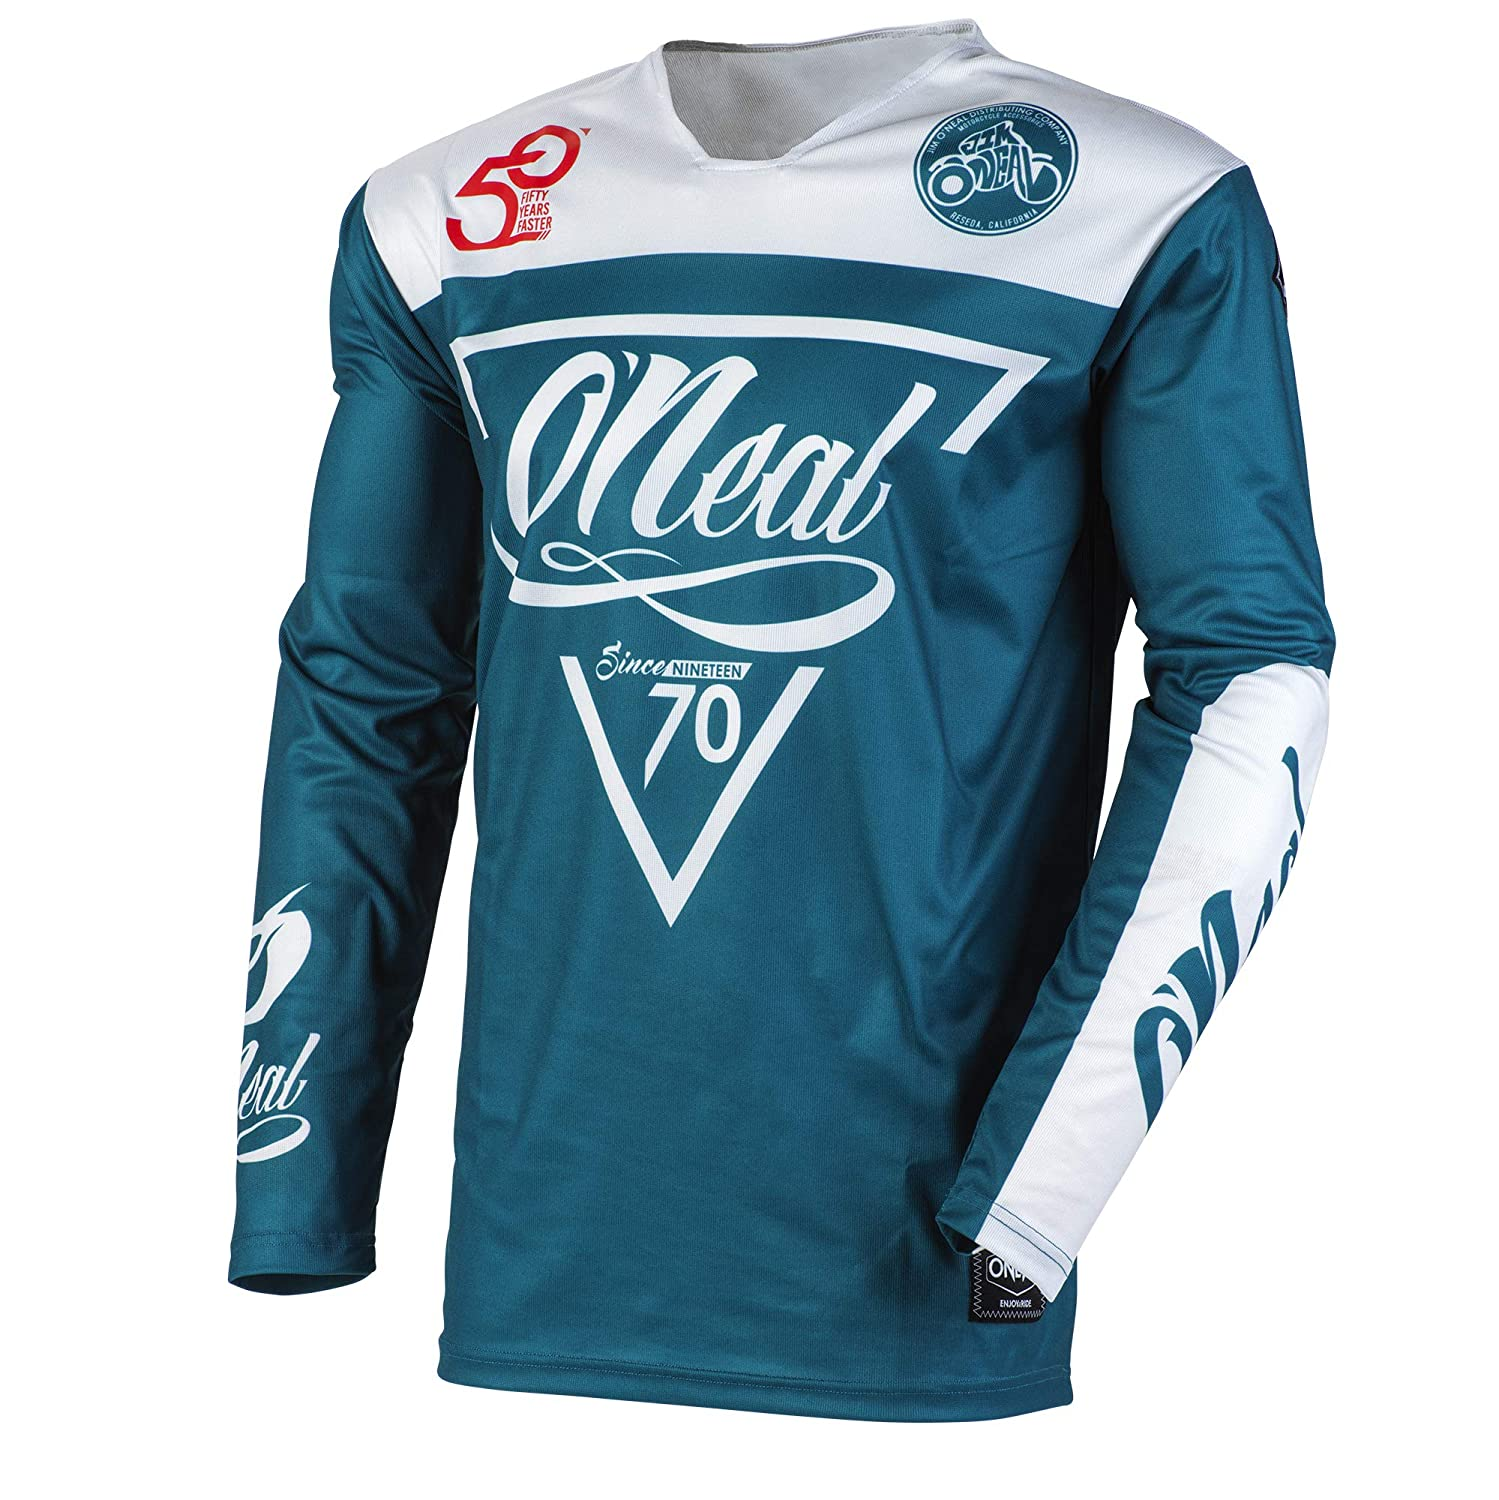 ONeal Mayhem Reseda Adult Jersey Blue//Gray, L